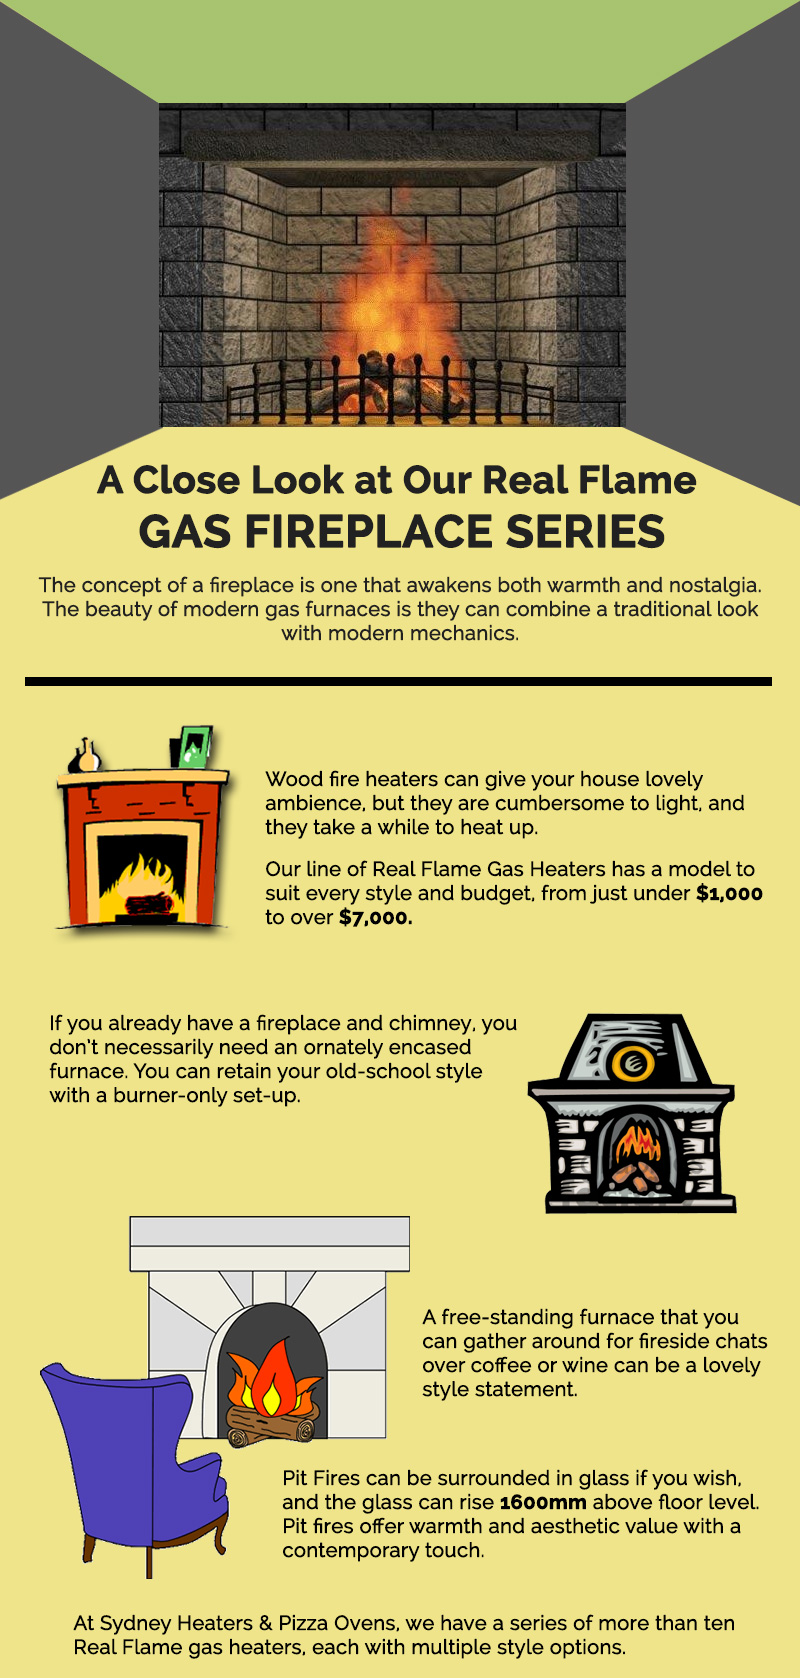 A Close Look at Our Real Flame Gas Fireplace Series